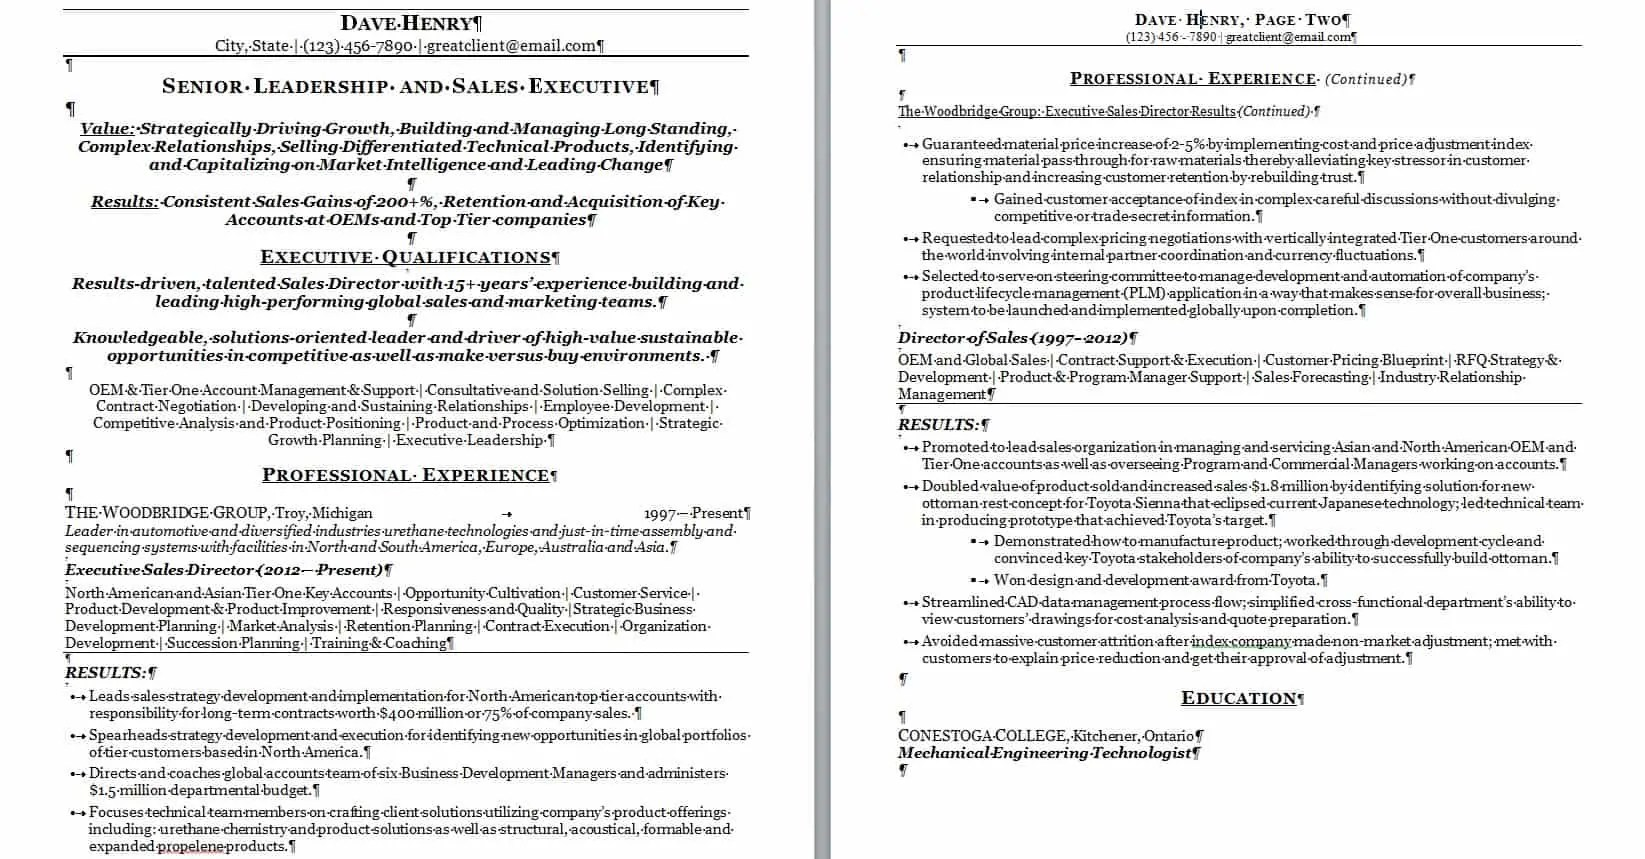 manager resume template template restaurant manager resume best senior project manager resume sample customer service resume senior project manager resume